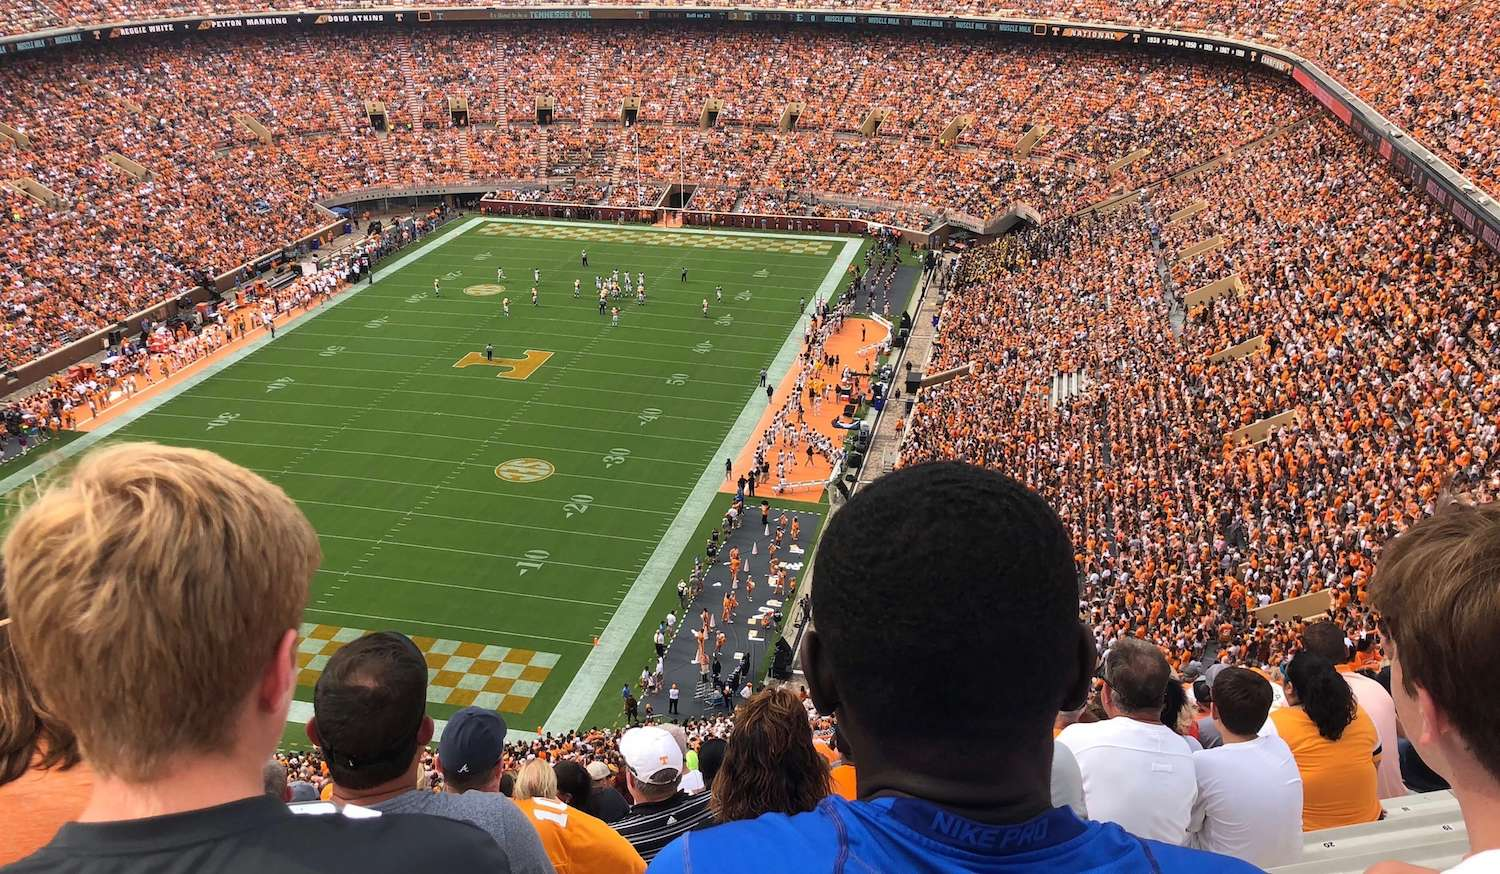 Tennessee Football Game Image